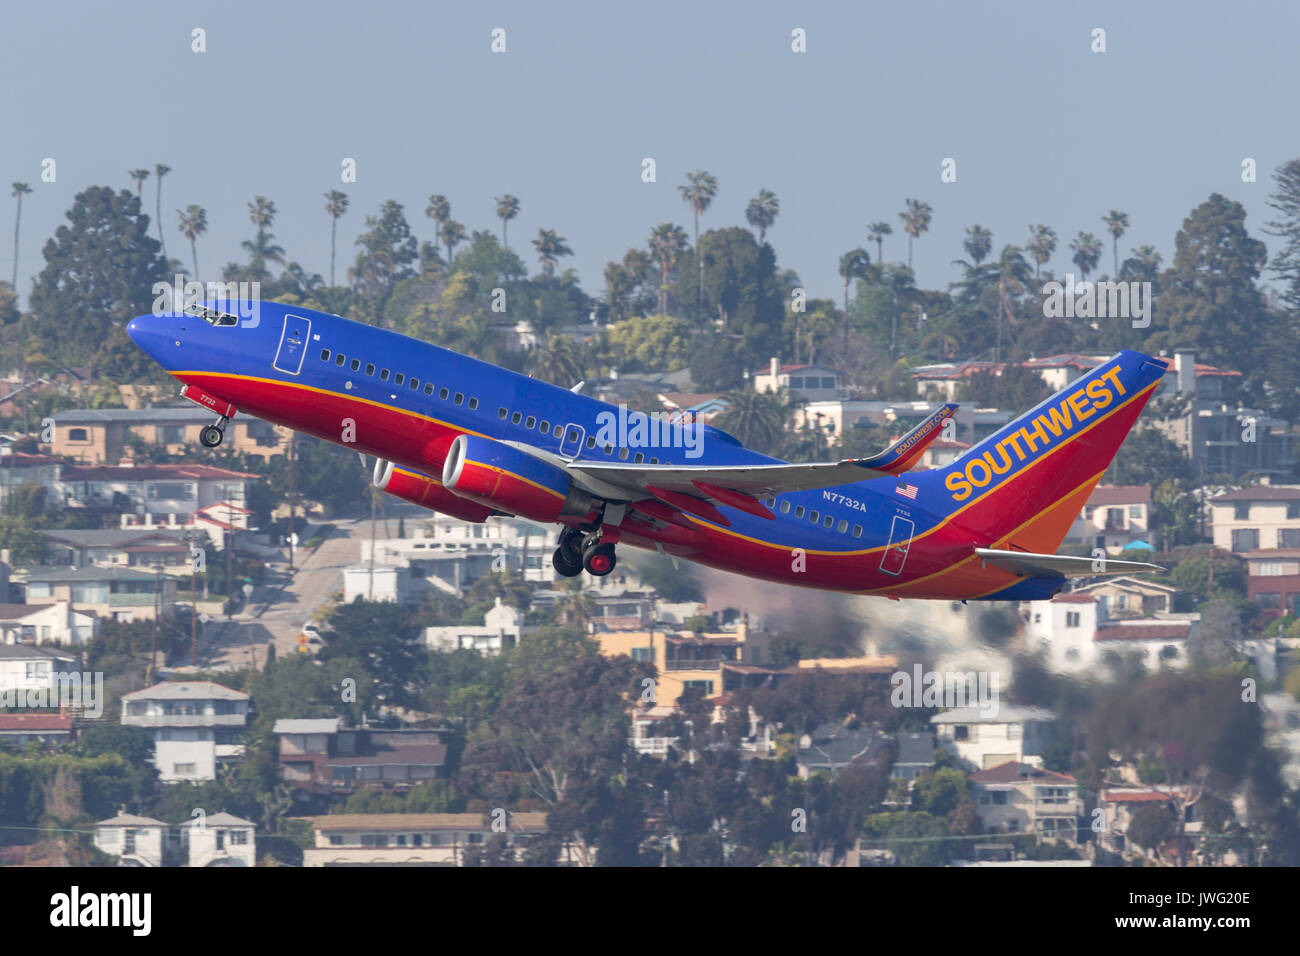 Southwest Airlines Boeing 737-7BD N7732A departing San Diego International Airport. - Stock Image